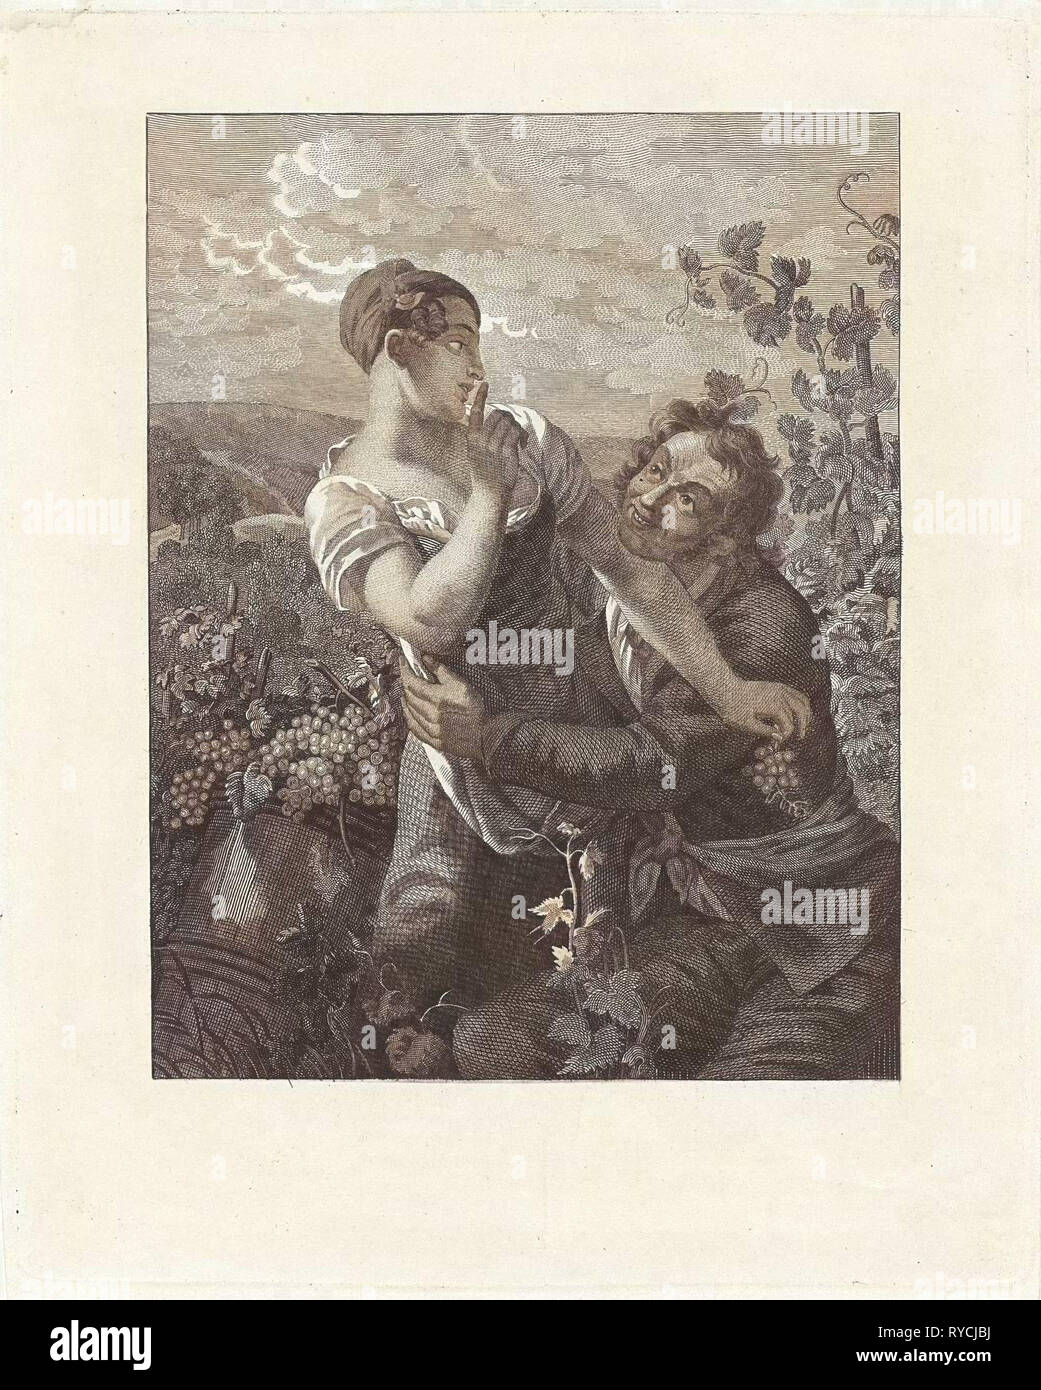 Courting couple in a vineyard, Anonymous, Peter Paul Joseph Noël, 1817 - 1867 - Stock Image